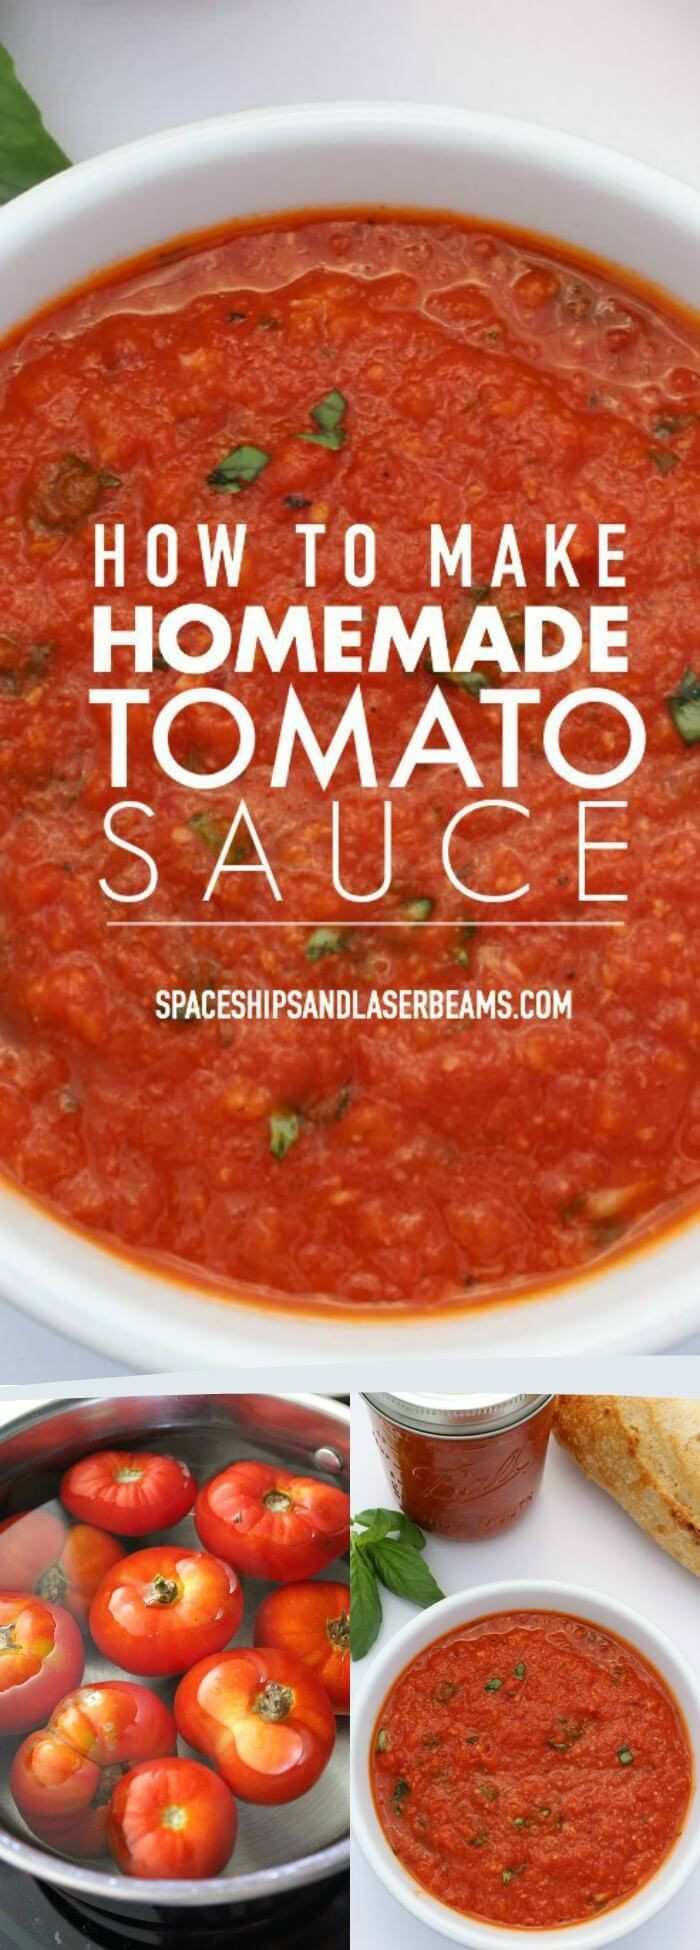 How To Make Spaghetti Sauce With Tomato Sauce  ITALIAN SPAGHETTI SAUCE and CANNING INSTRUCTIONS